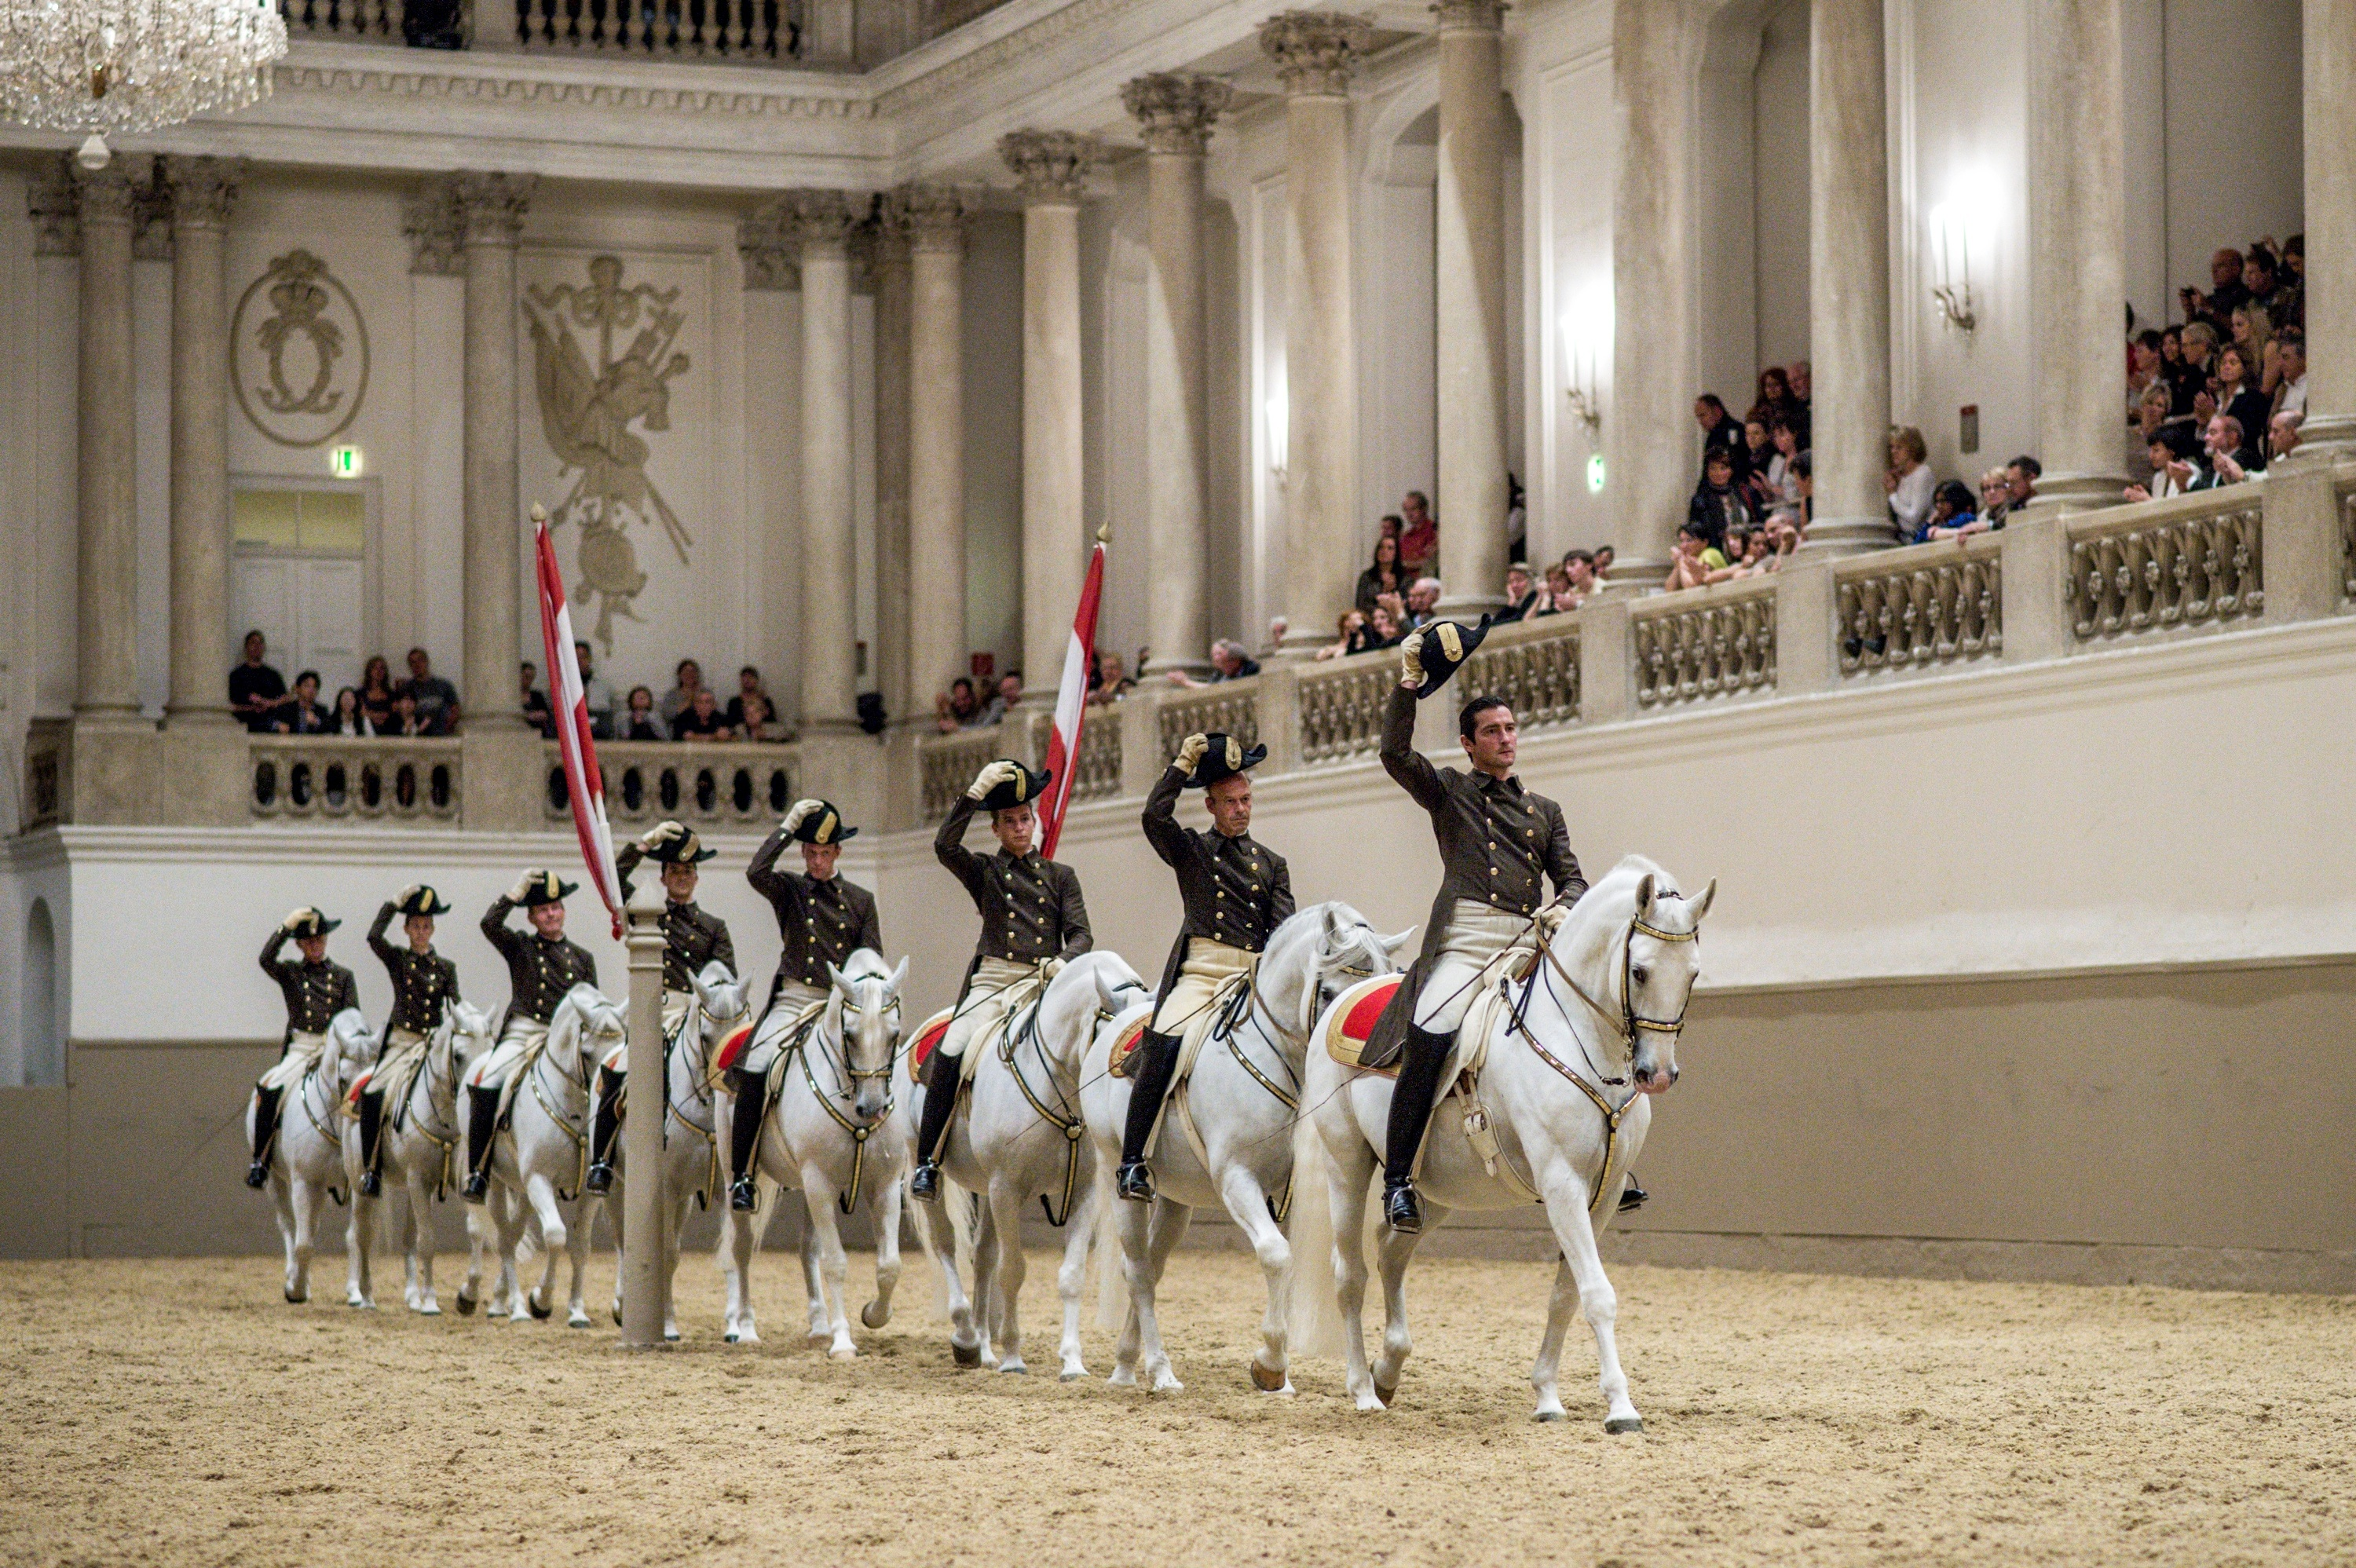 School Quadrille c Spanish Riding School ASAblanca.com Ren+R van Bakel1 - The Spanish Riding School of Vienna announce 2014 UK tour